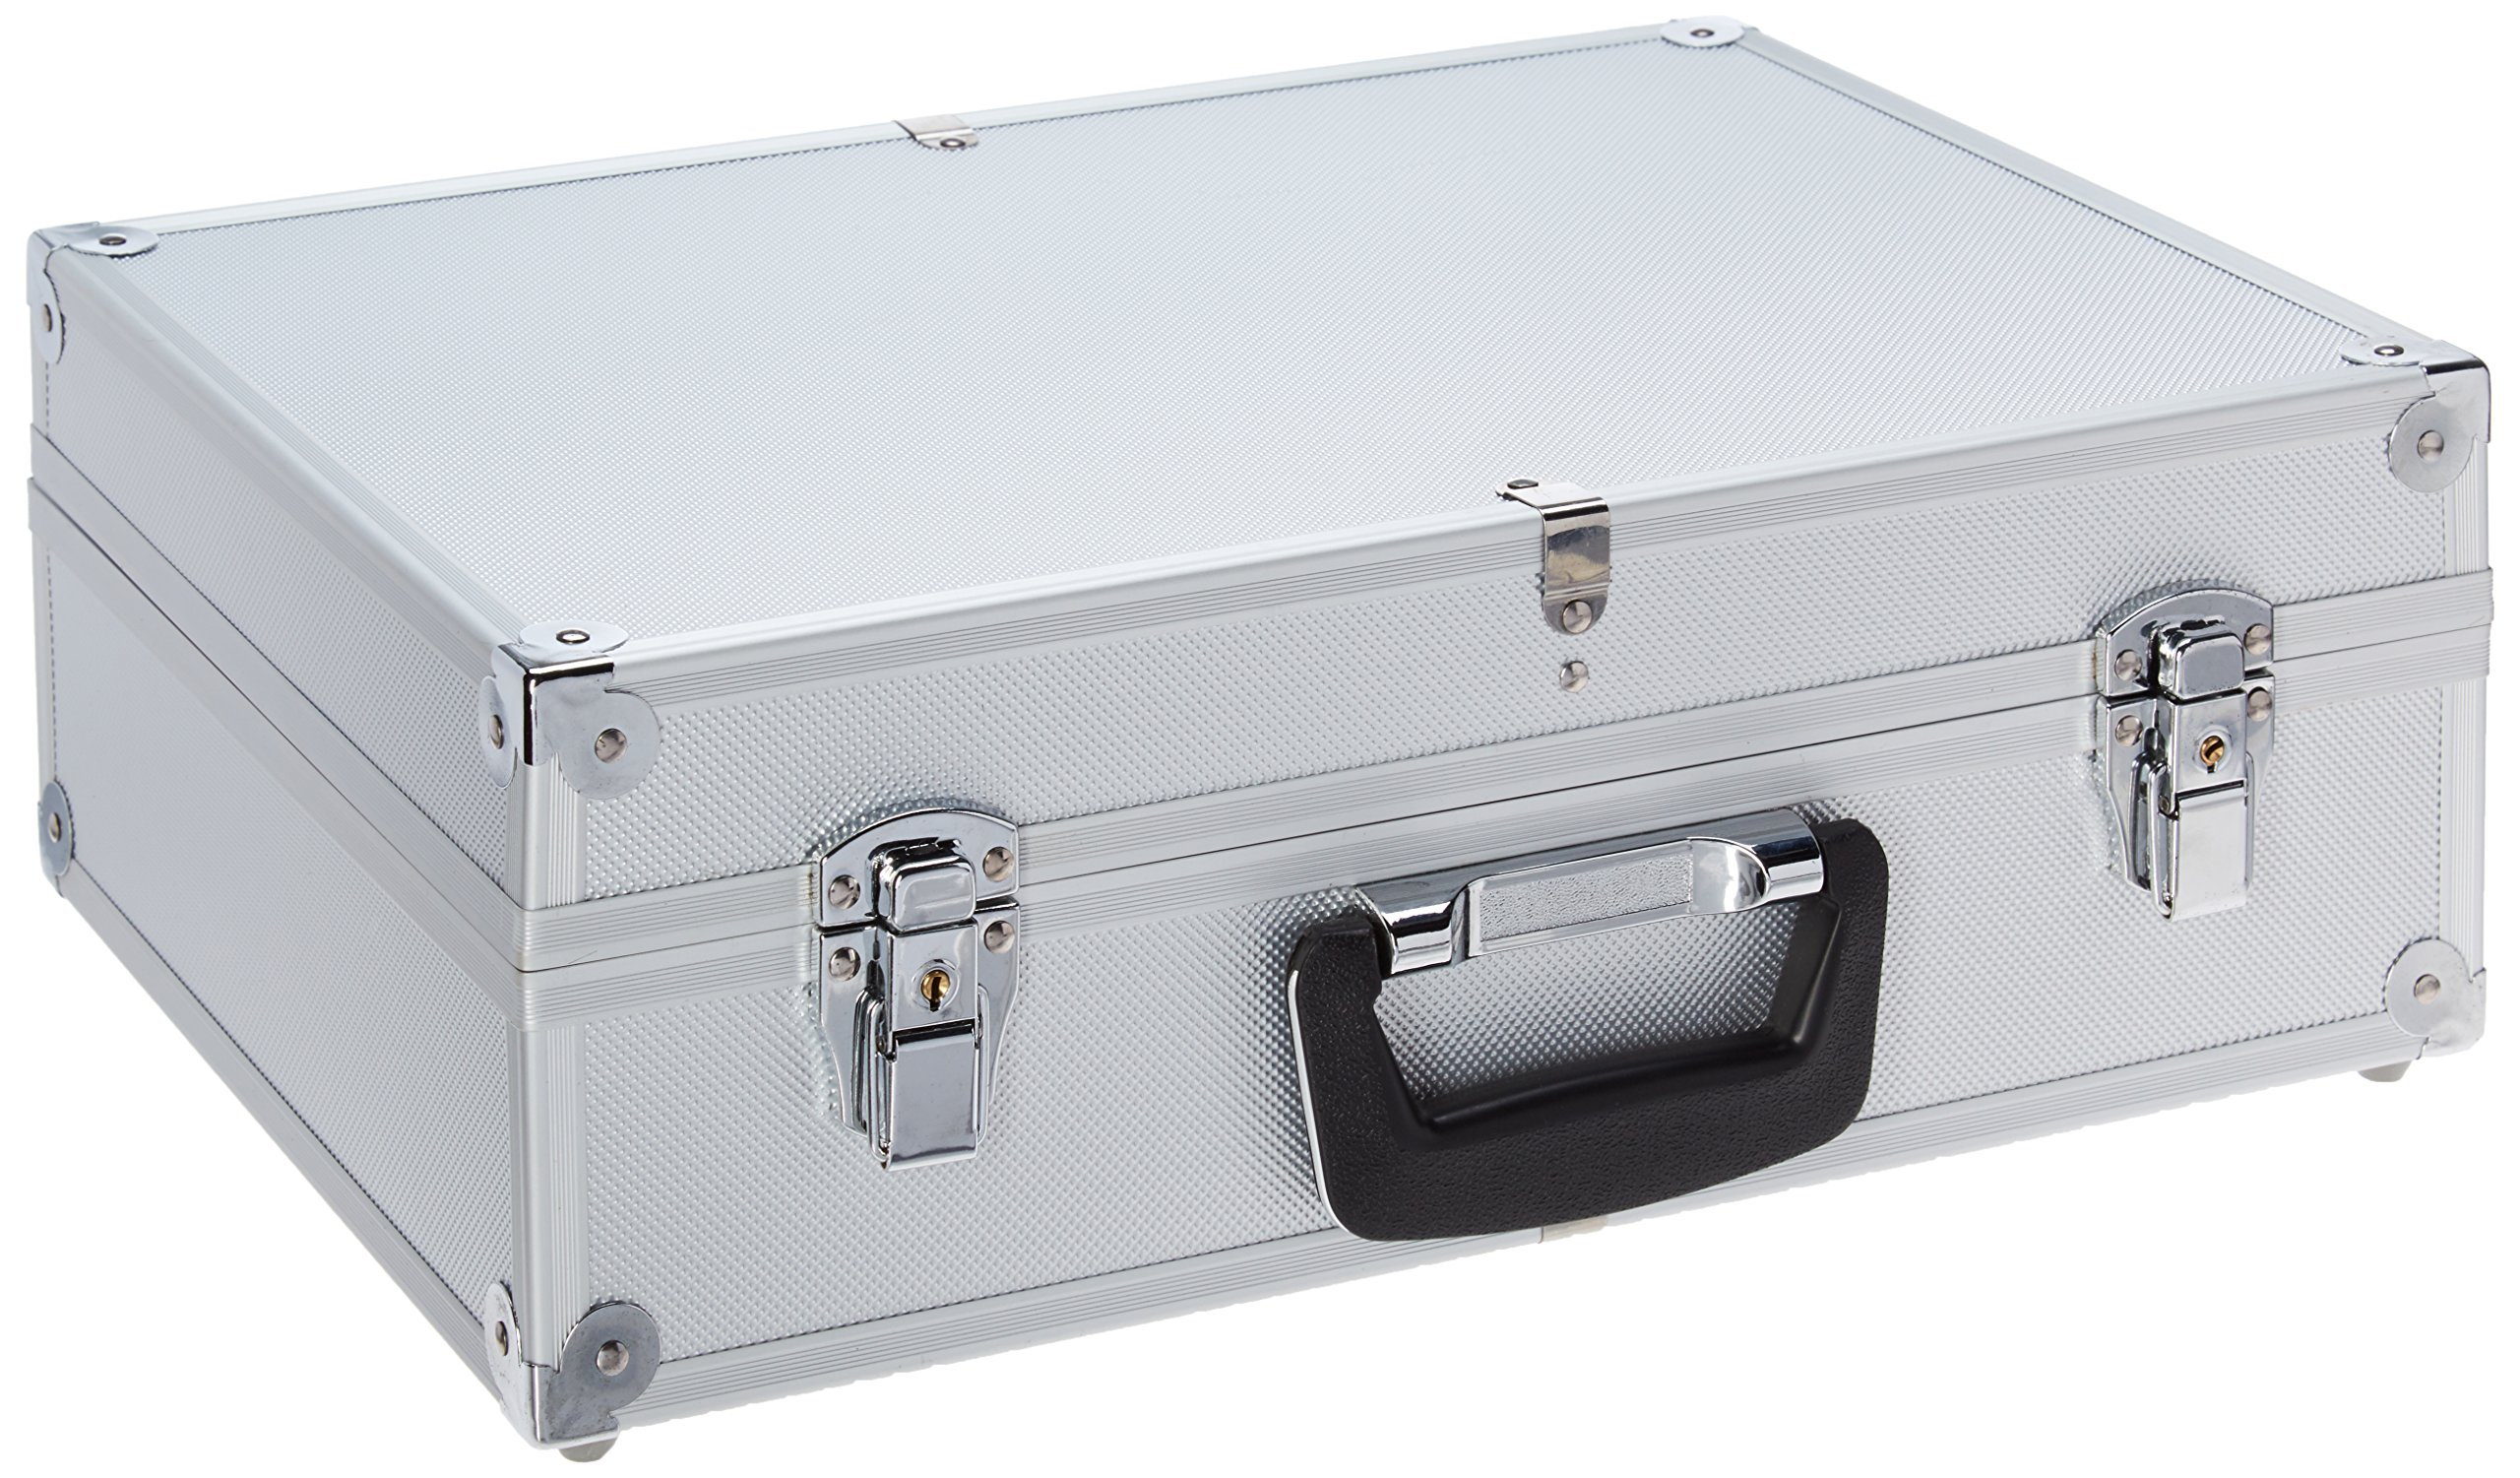 T.Z. Case International Case with Removable Tool Pallet and Two Key Lock Latches, Silver Dot